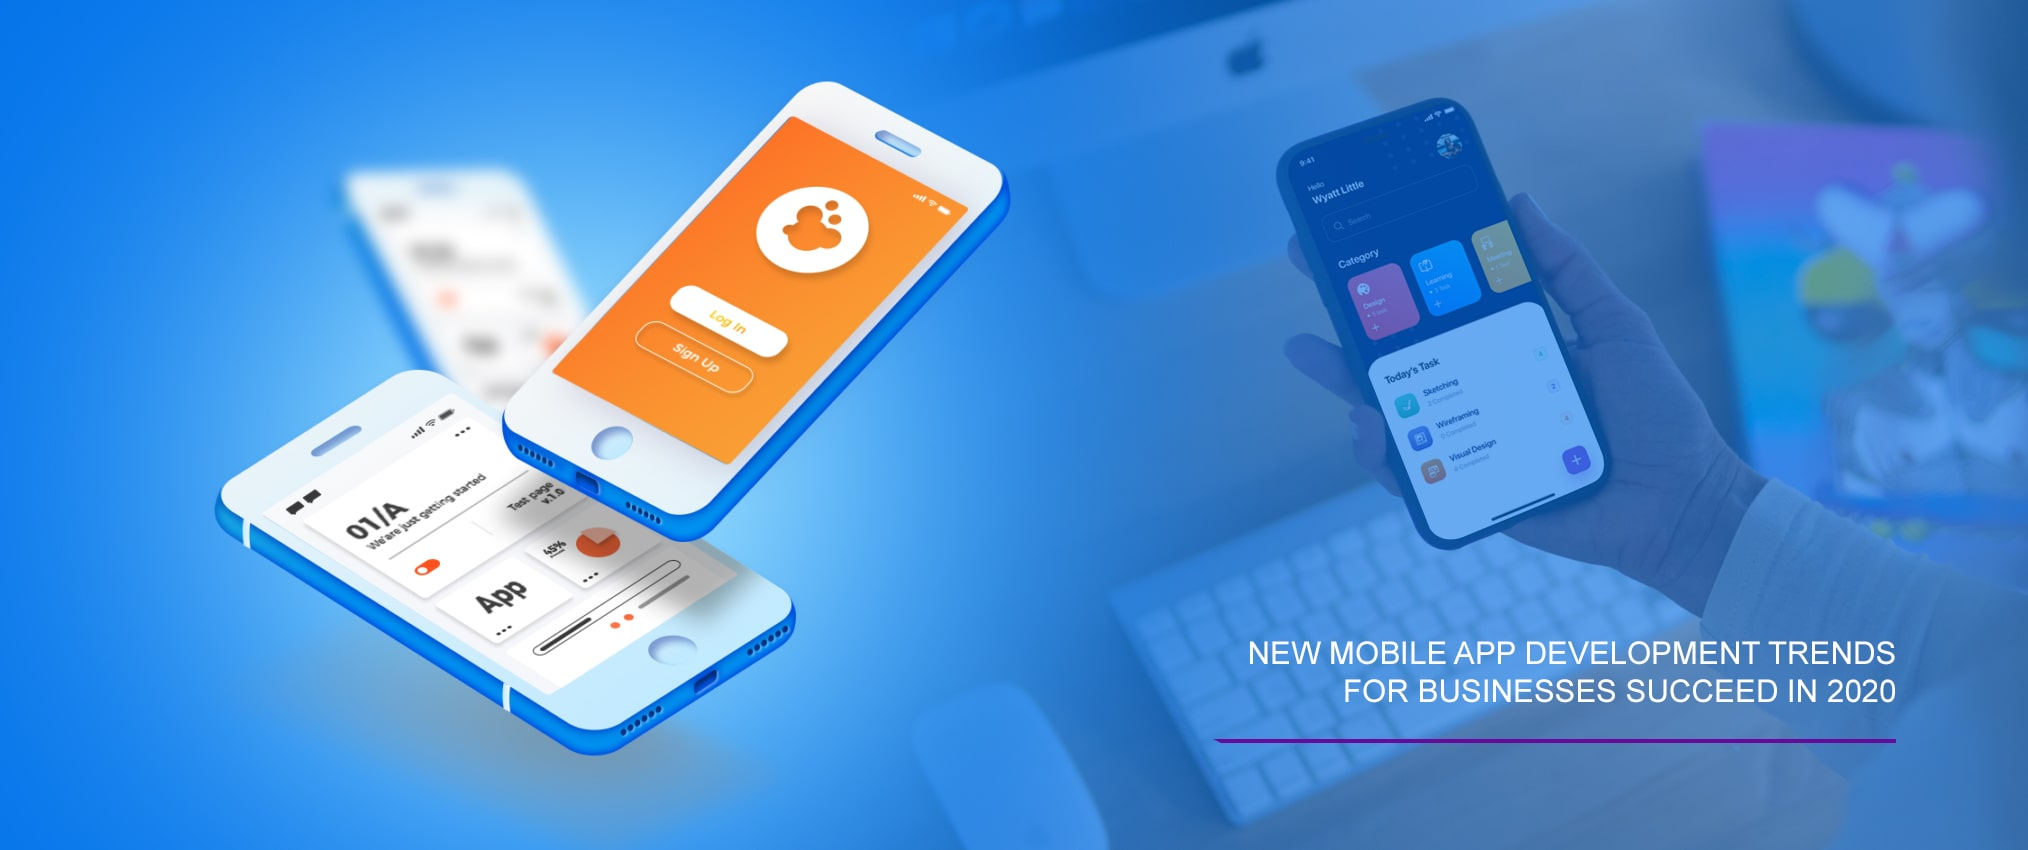 mobile app development trends buinesses succeed 2020